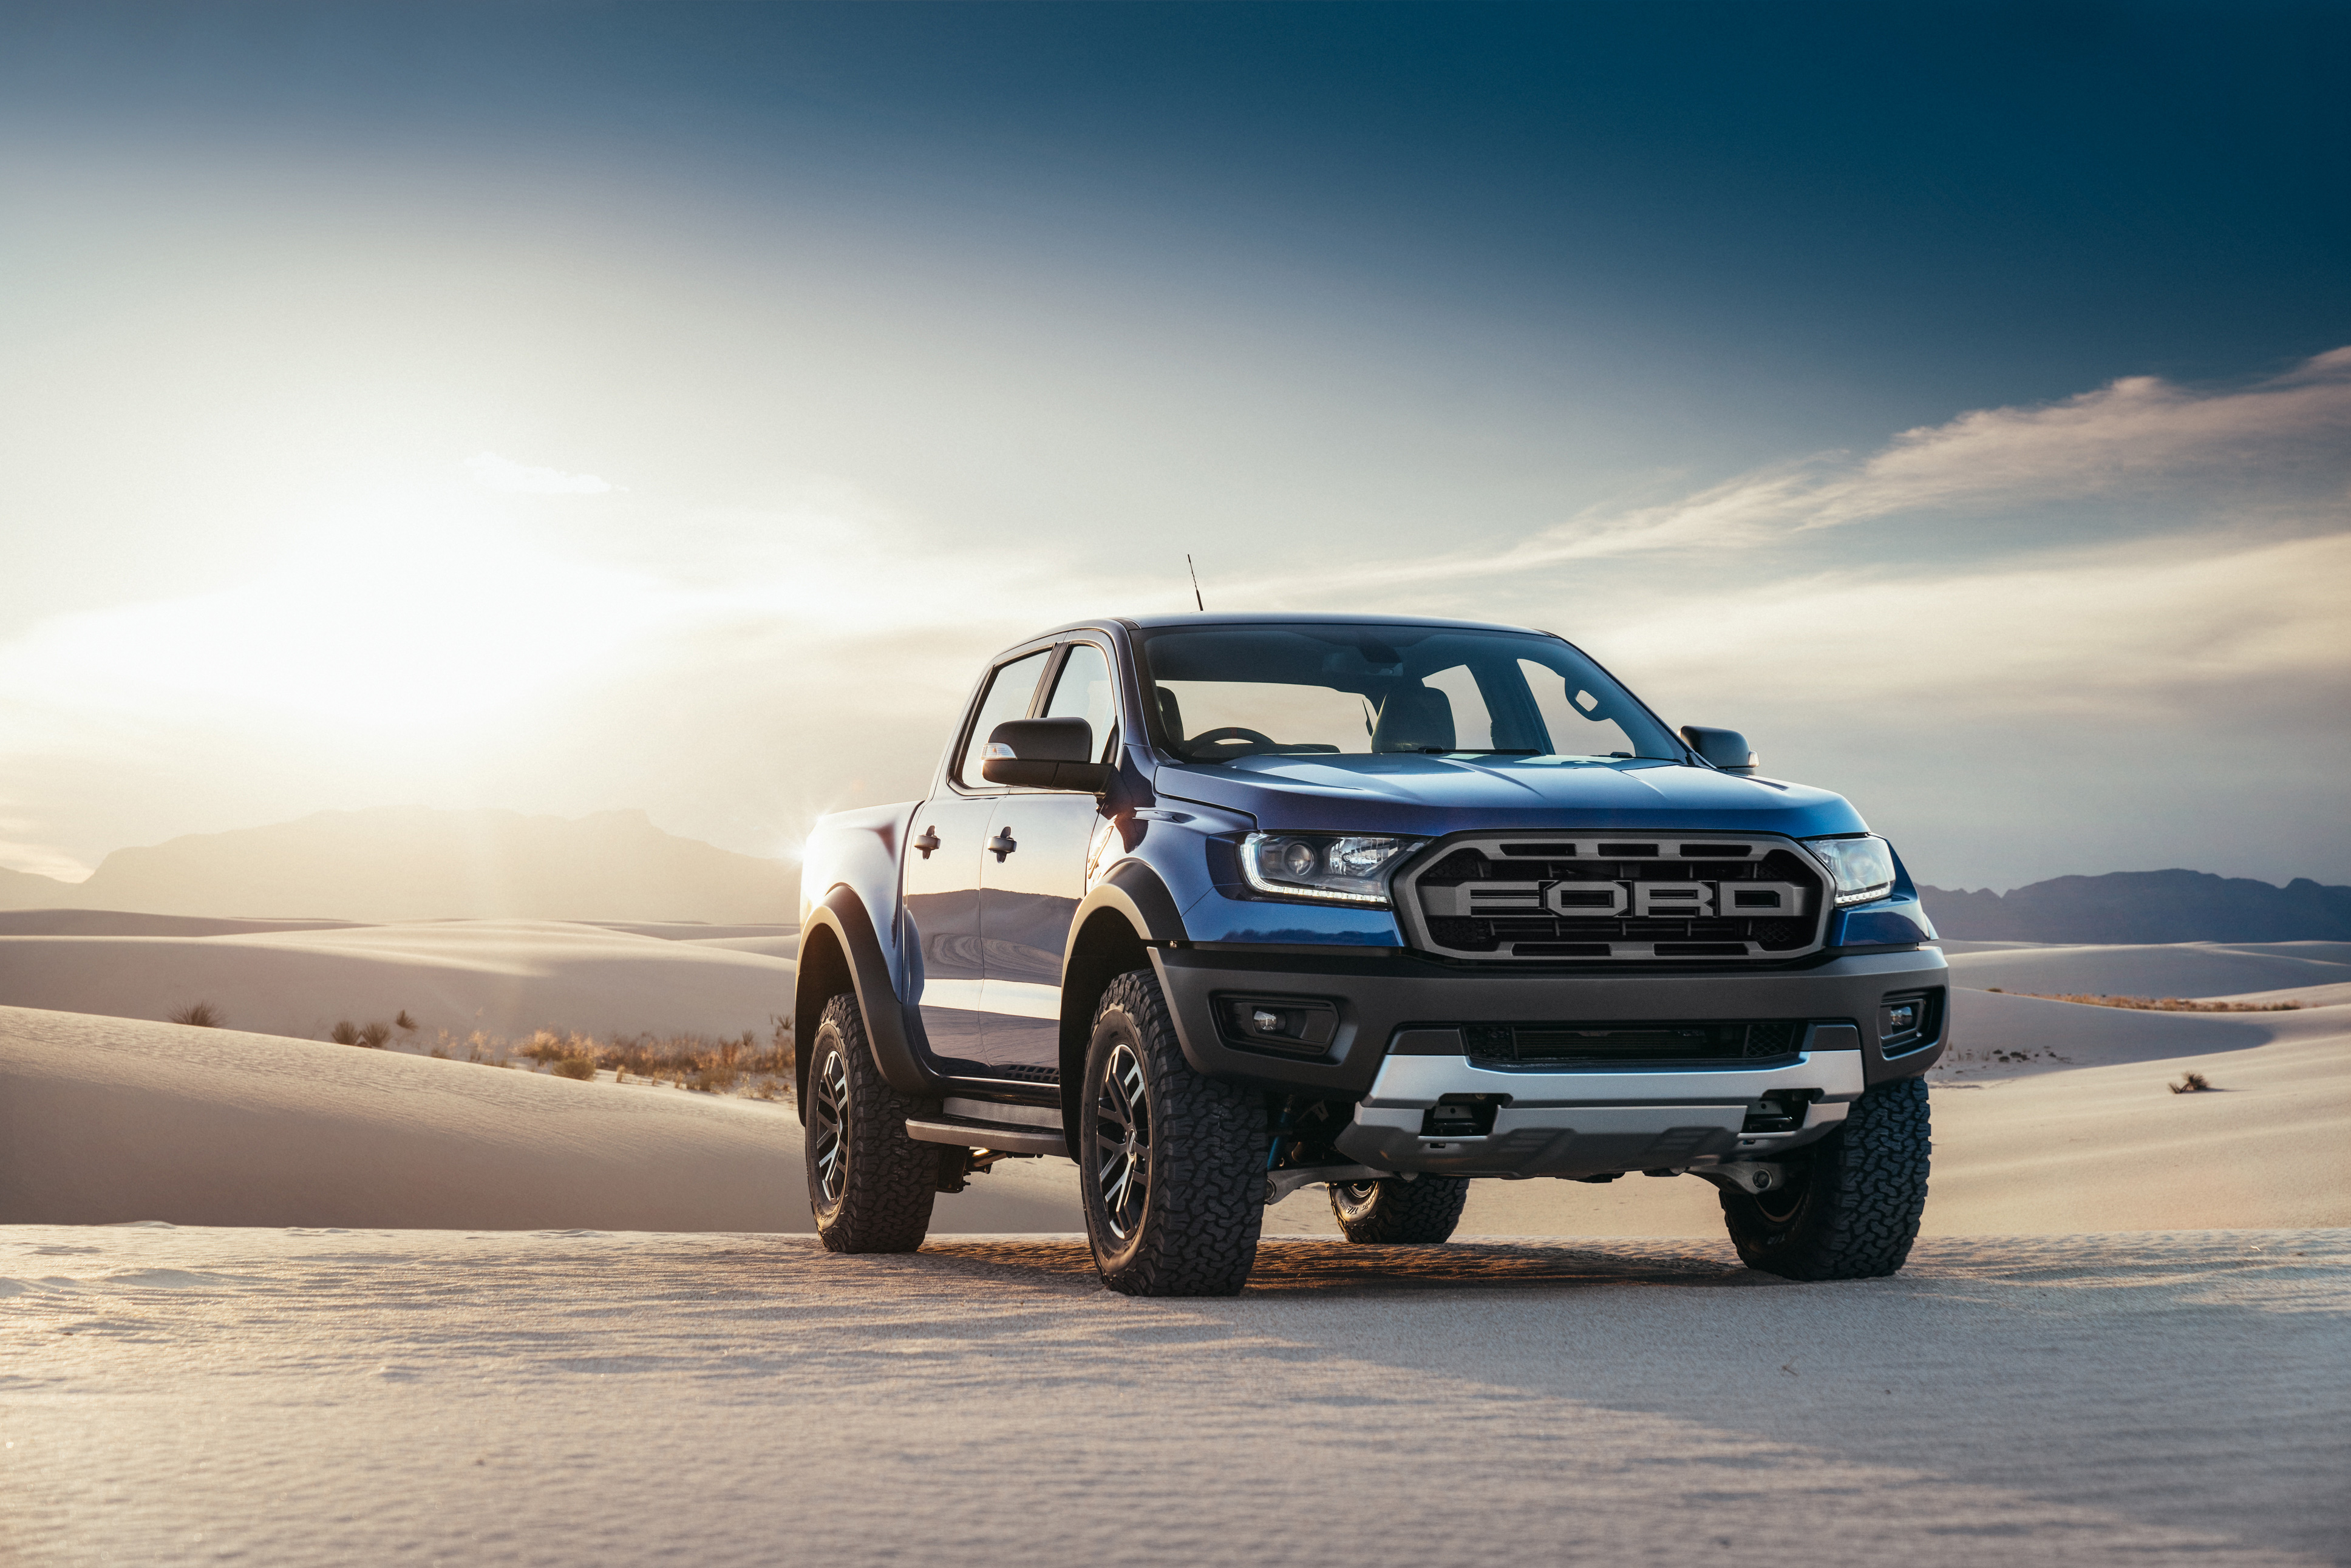 Samsung S4 Hd Wallpapers 2019: 2019 Ford Ranger Raptor, HD Cars, 4k Wallpapers, Images